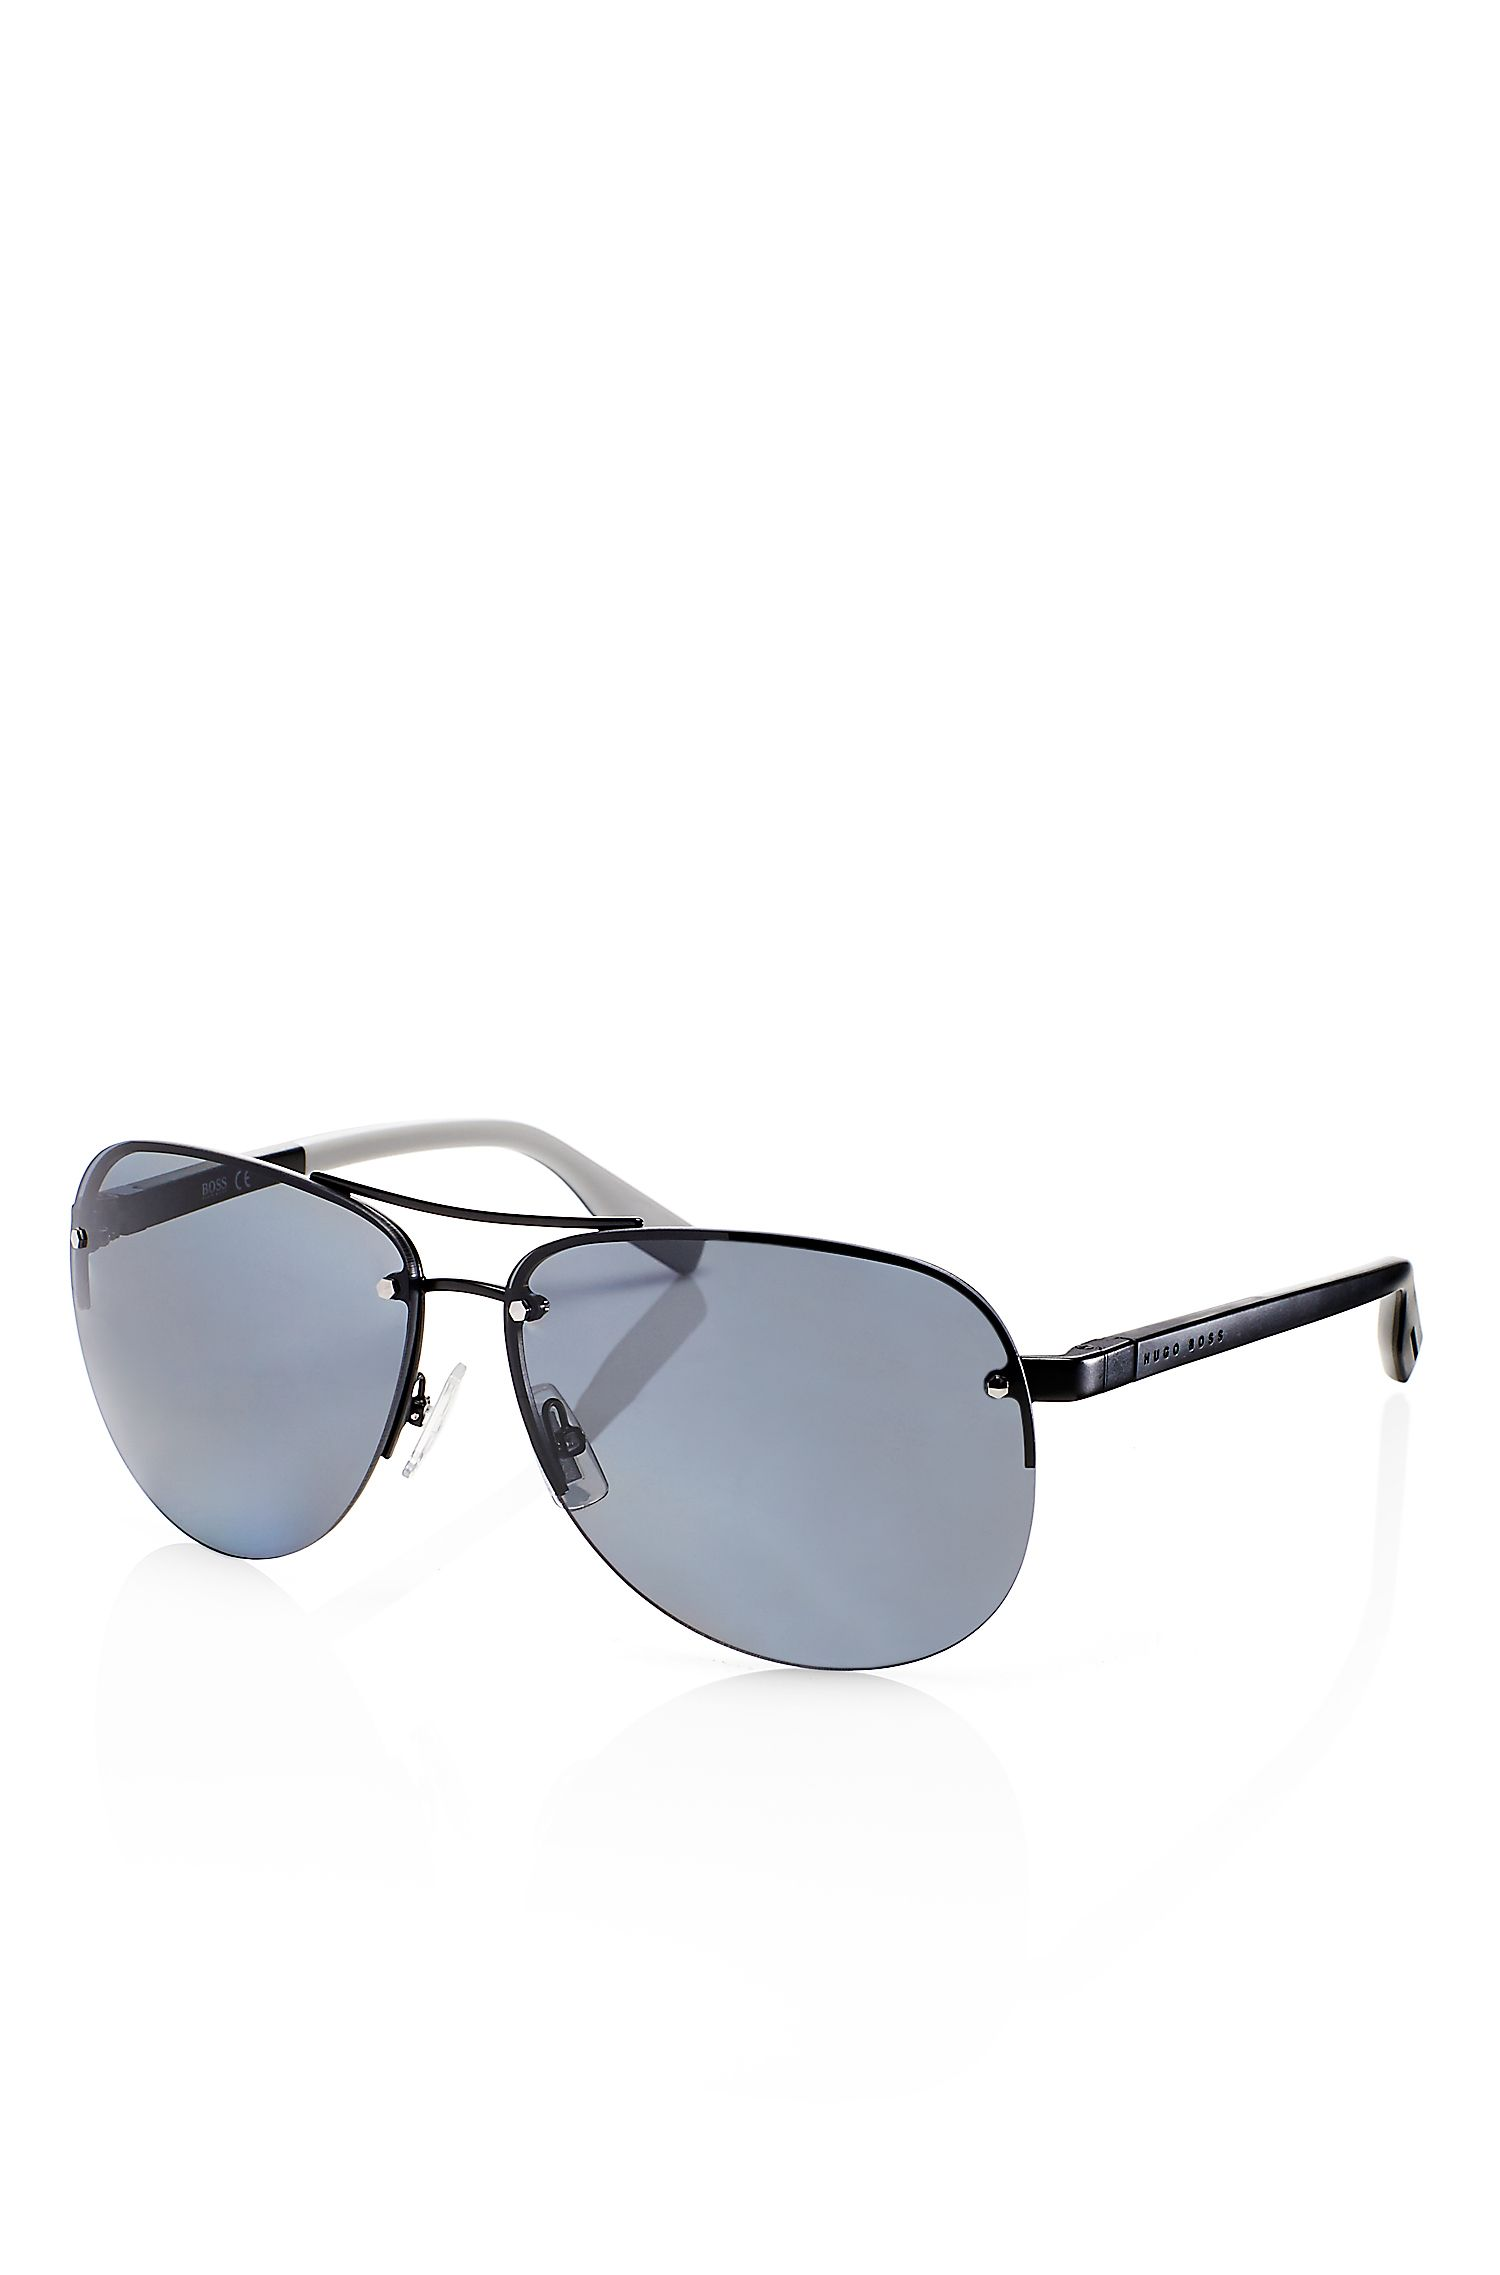 'Sunglasses' | Dark Ruthenium Rimless Aviator Sunglasses